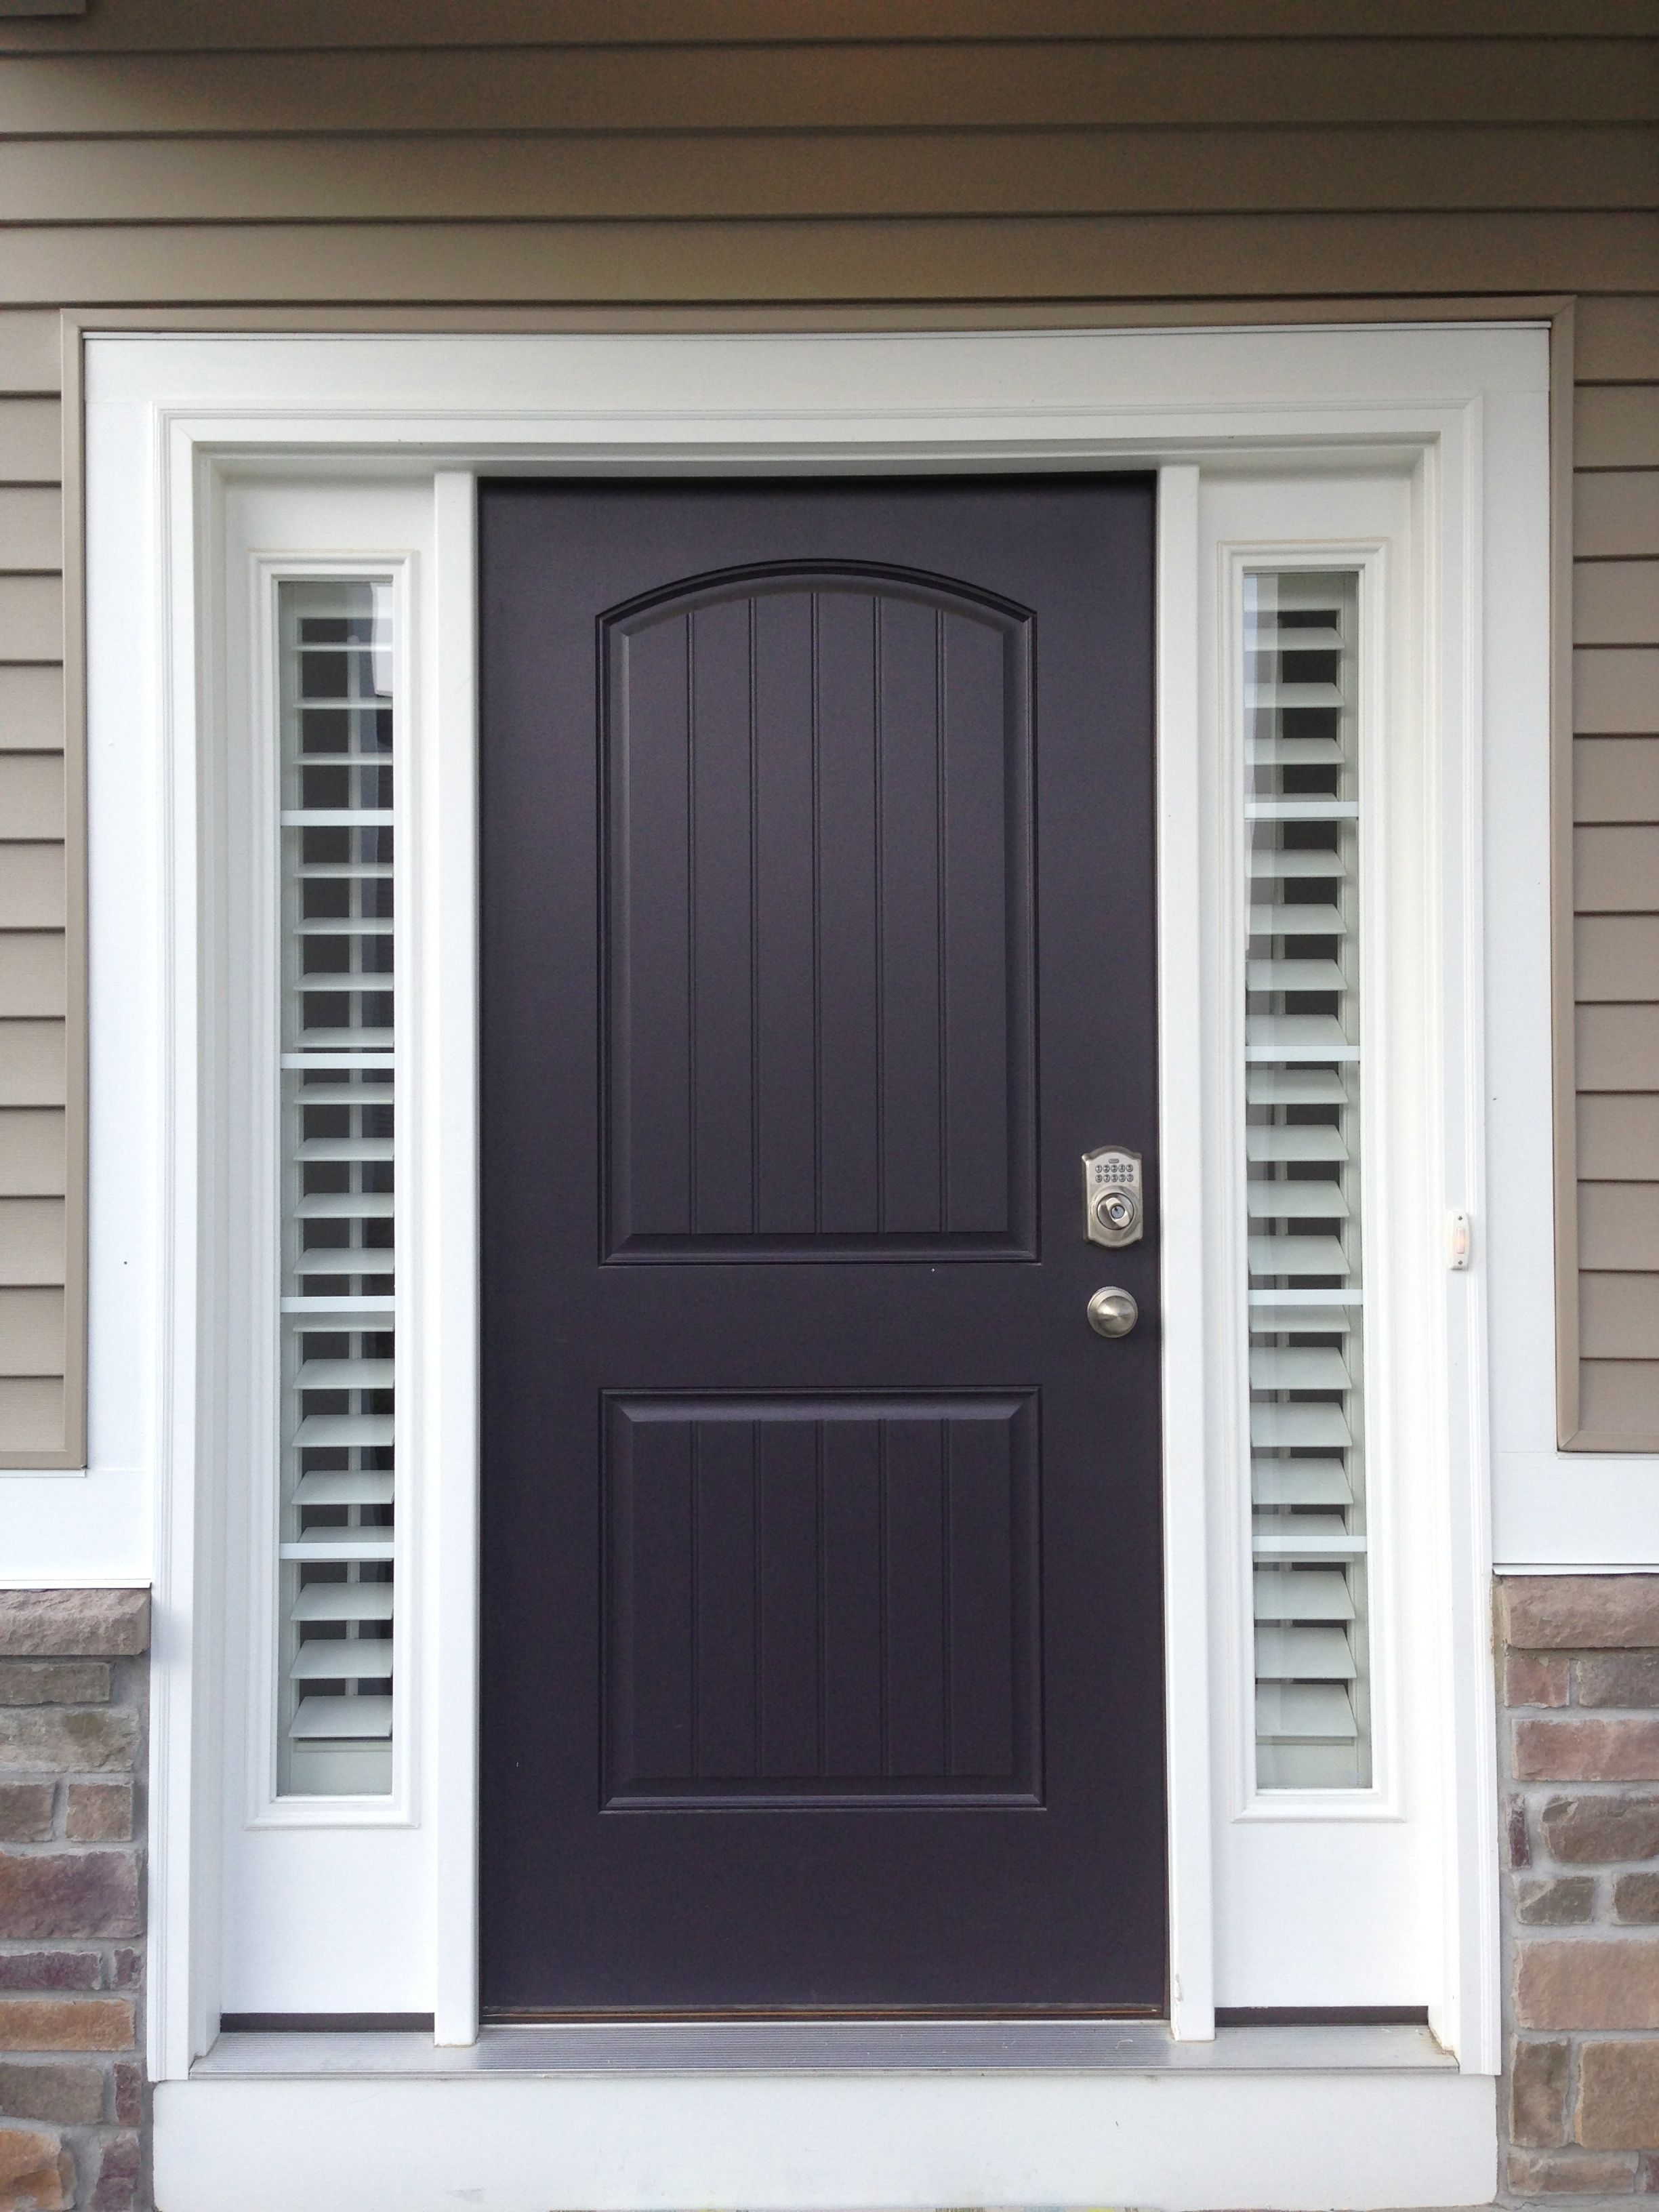 Entry door sidelight window shutters sunburst shutters for Front door and sidelights